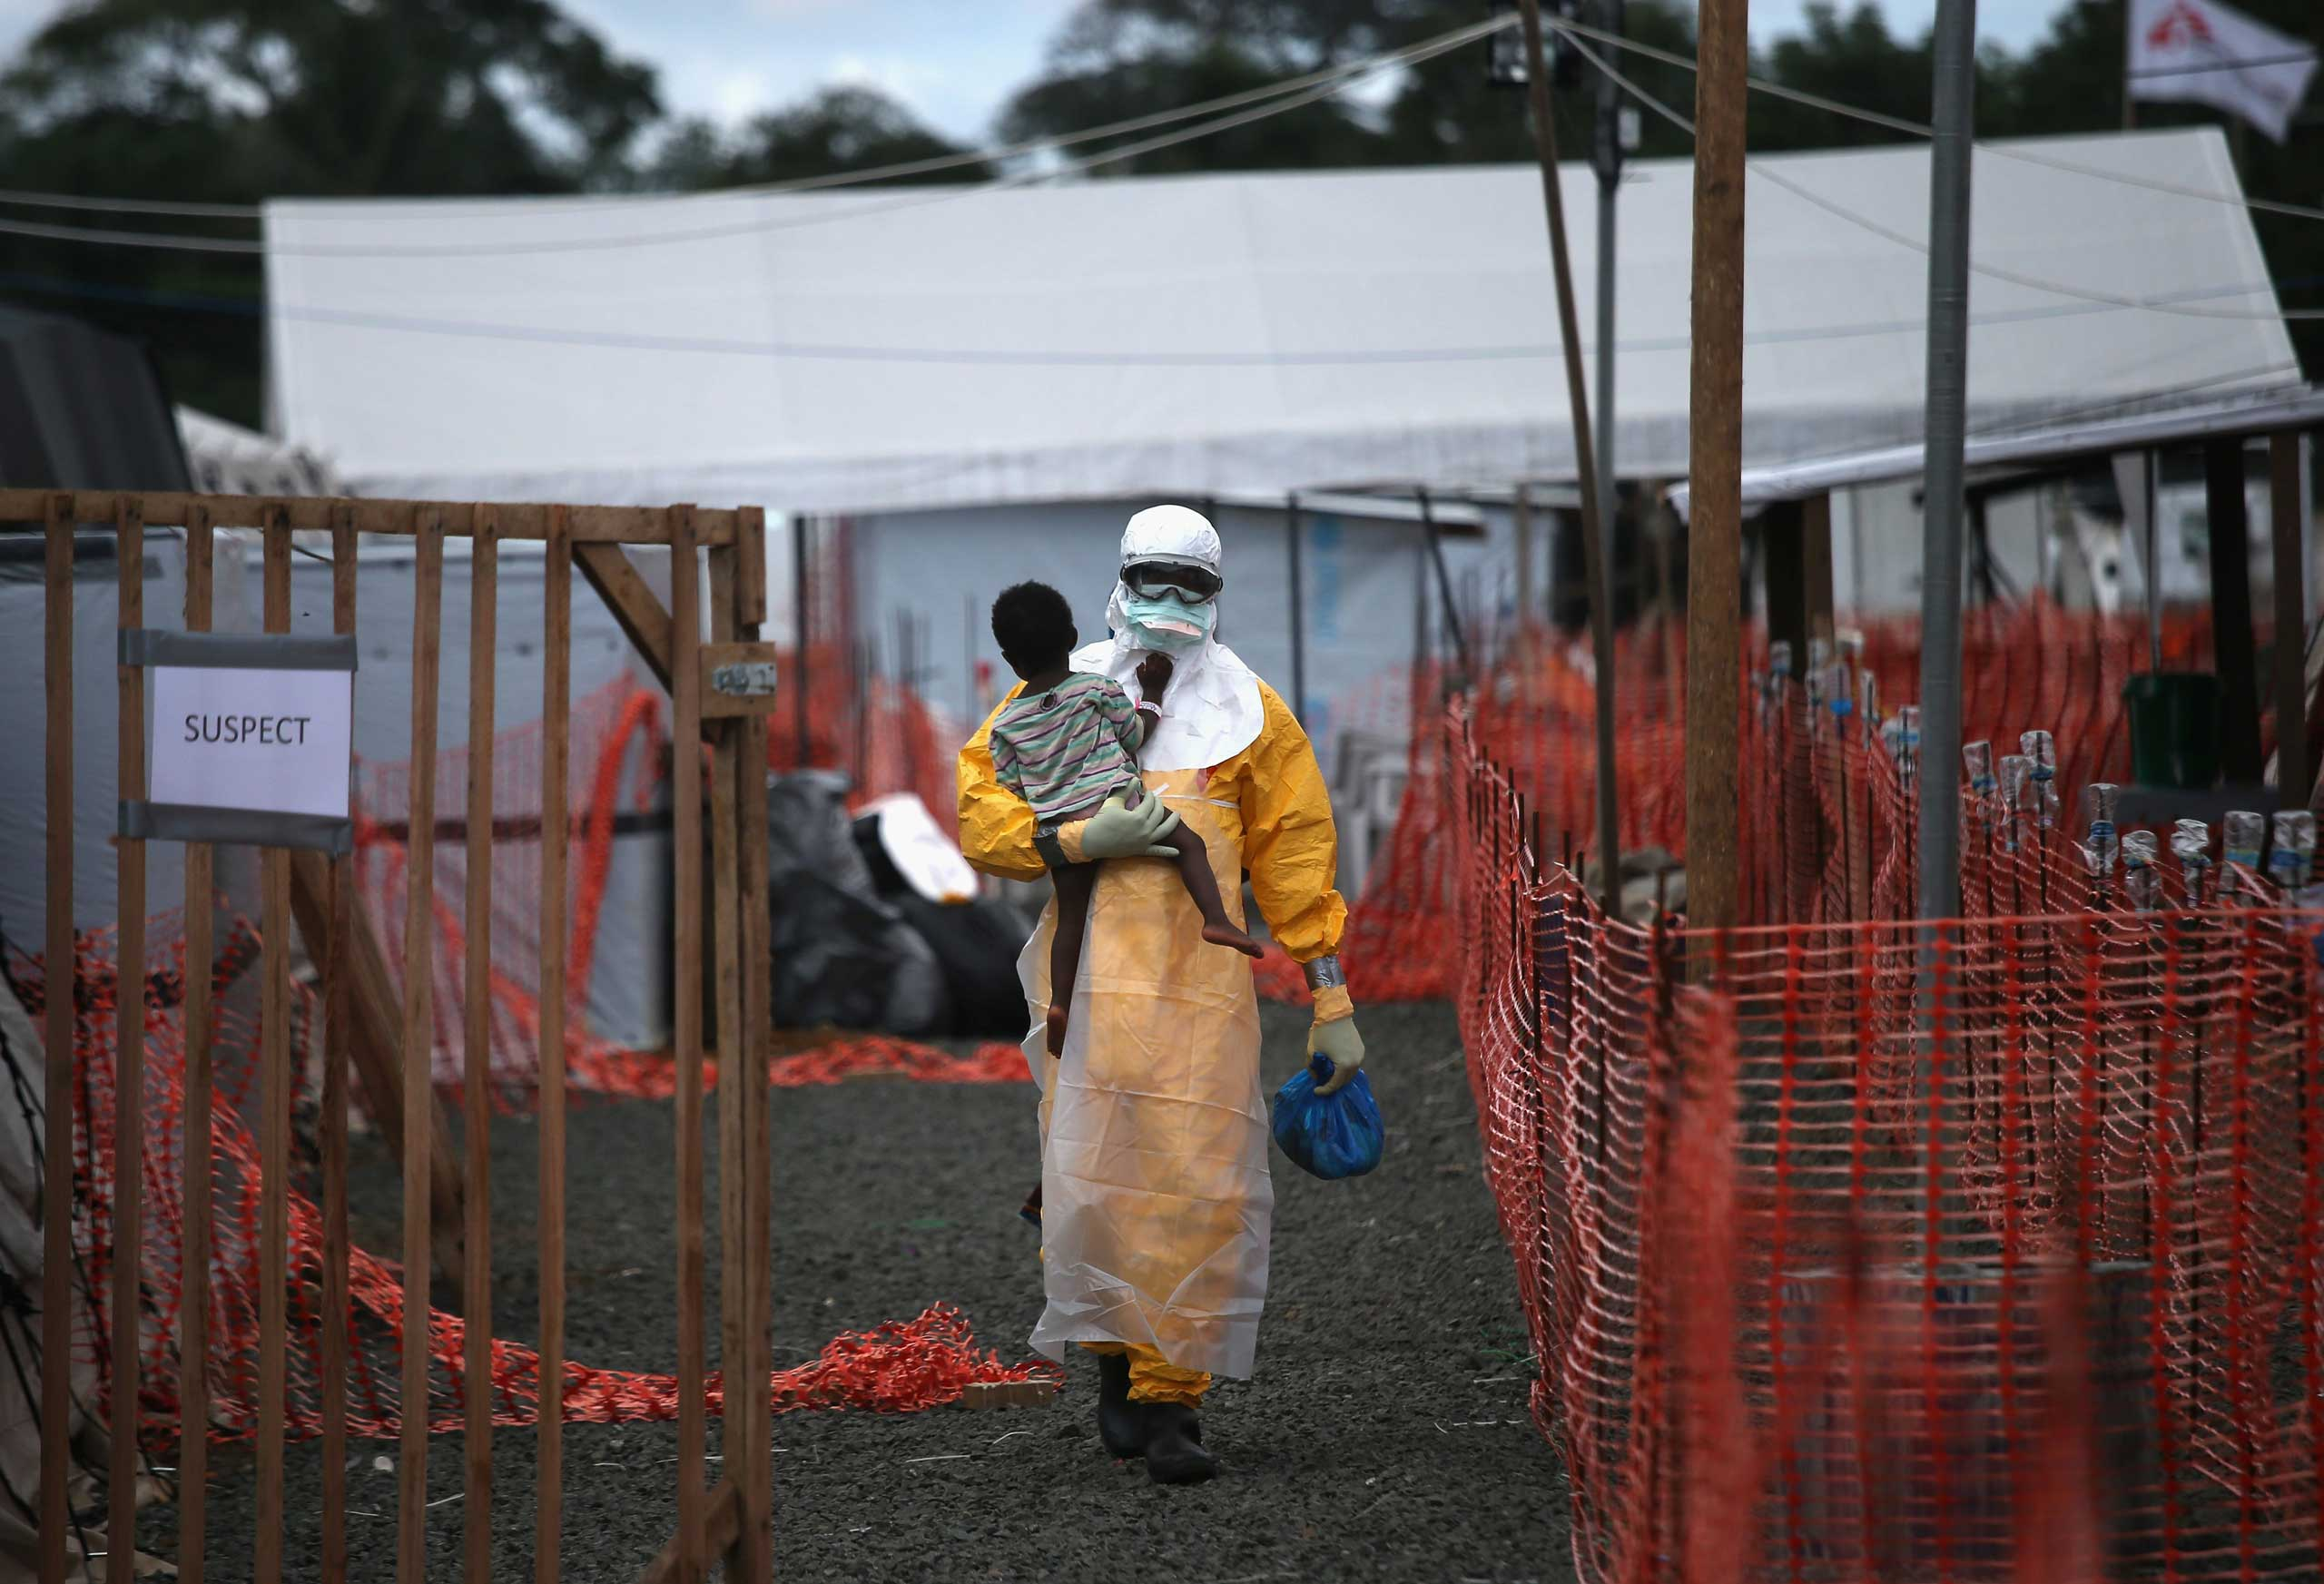 Oct. 5, 2014. Liberia Races To Expand Ebola Treatment Facilities, As U.S. Troops Arrive